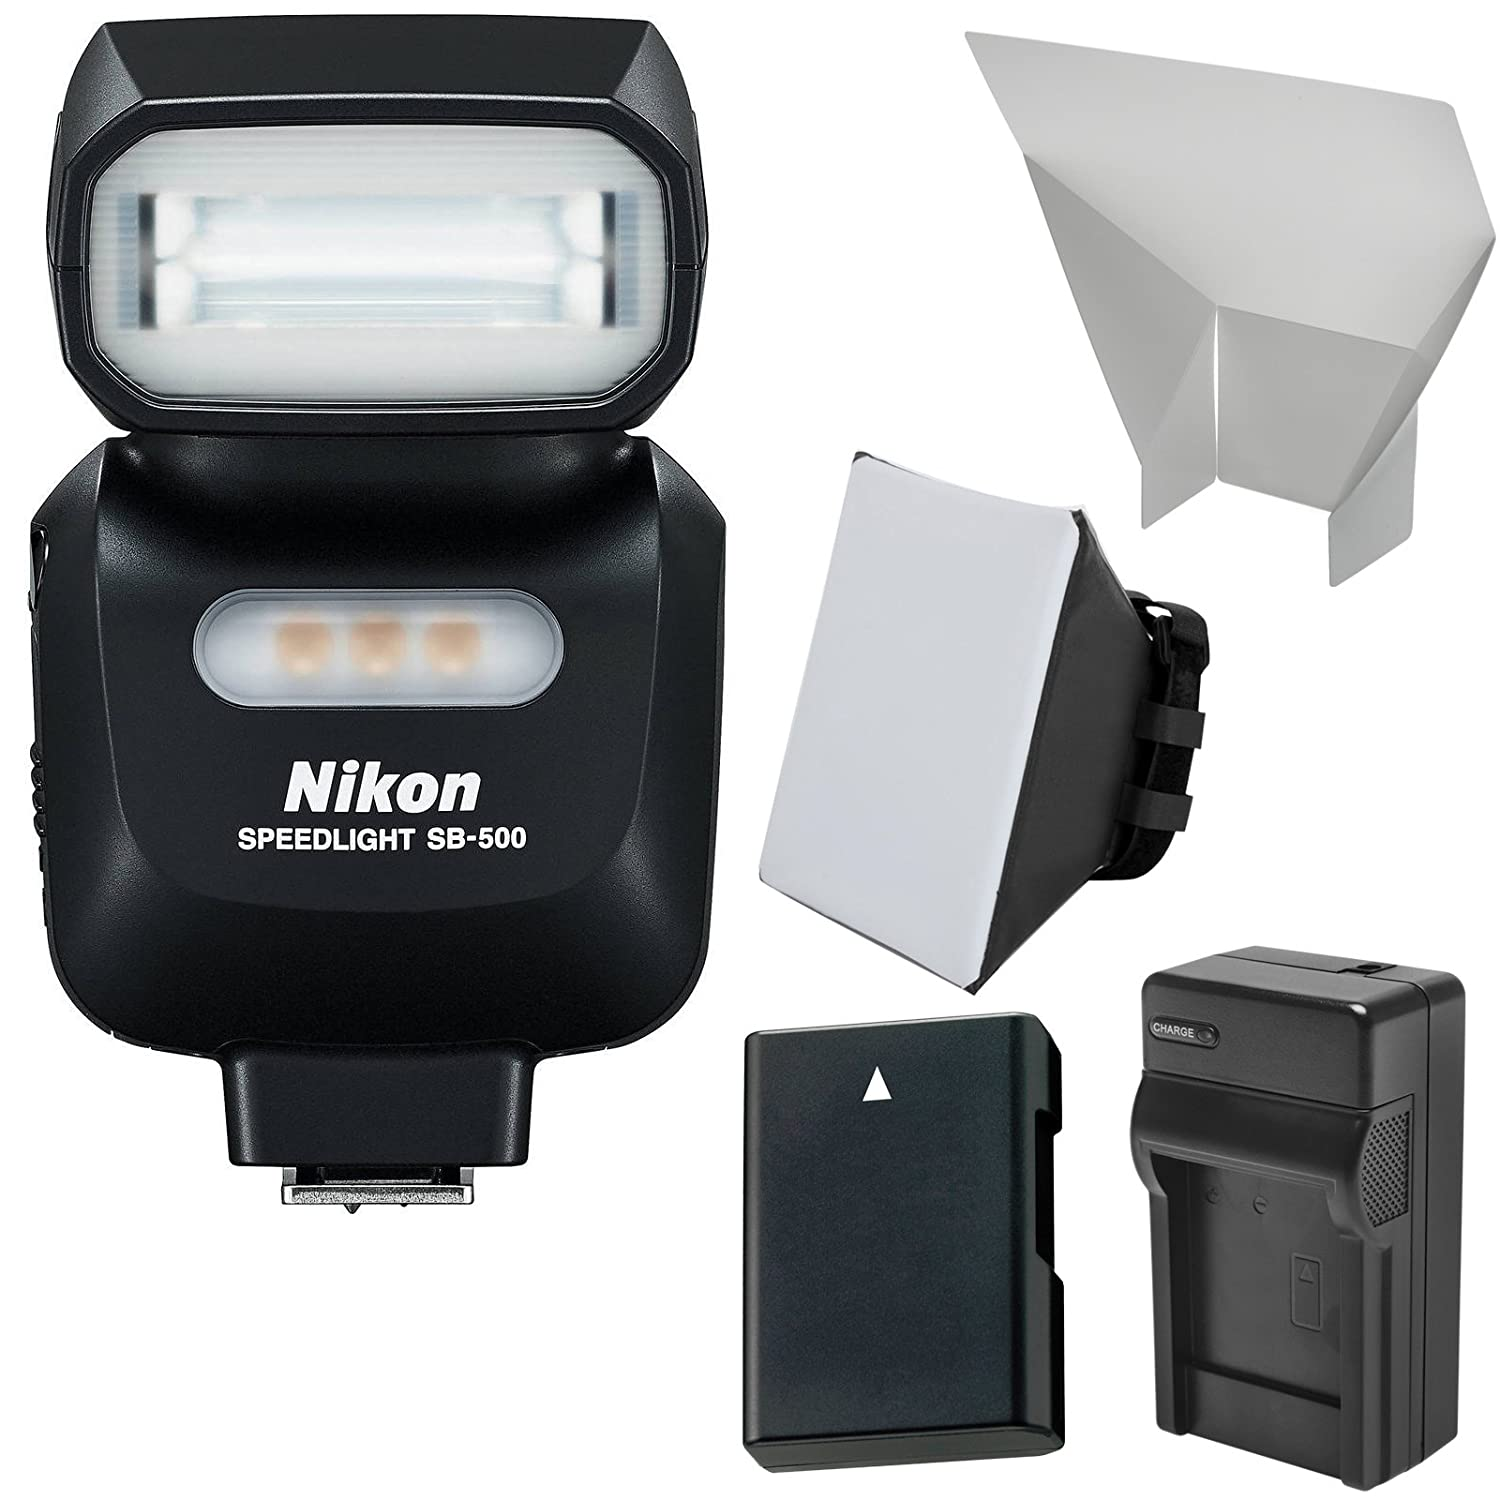 Nikon SB-500 AF Speedlight Flash & LED Video Light + EN-EL14 Battery & Charger + Softbox + Reflector Kit for D3200, D3300, D5100, D5200, D5300 Camera nikon speedlight sb n7 black фотовспышка